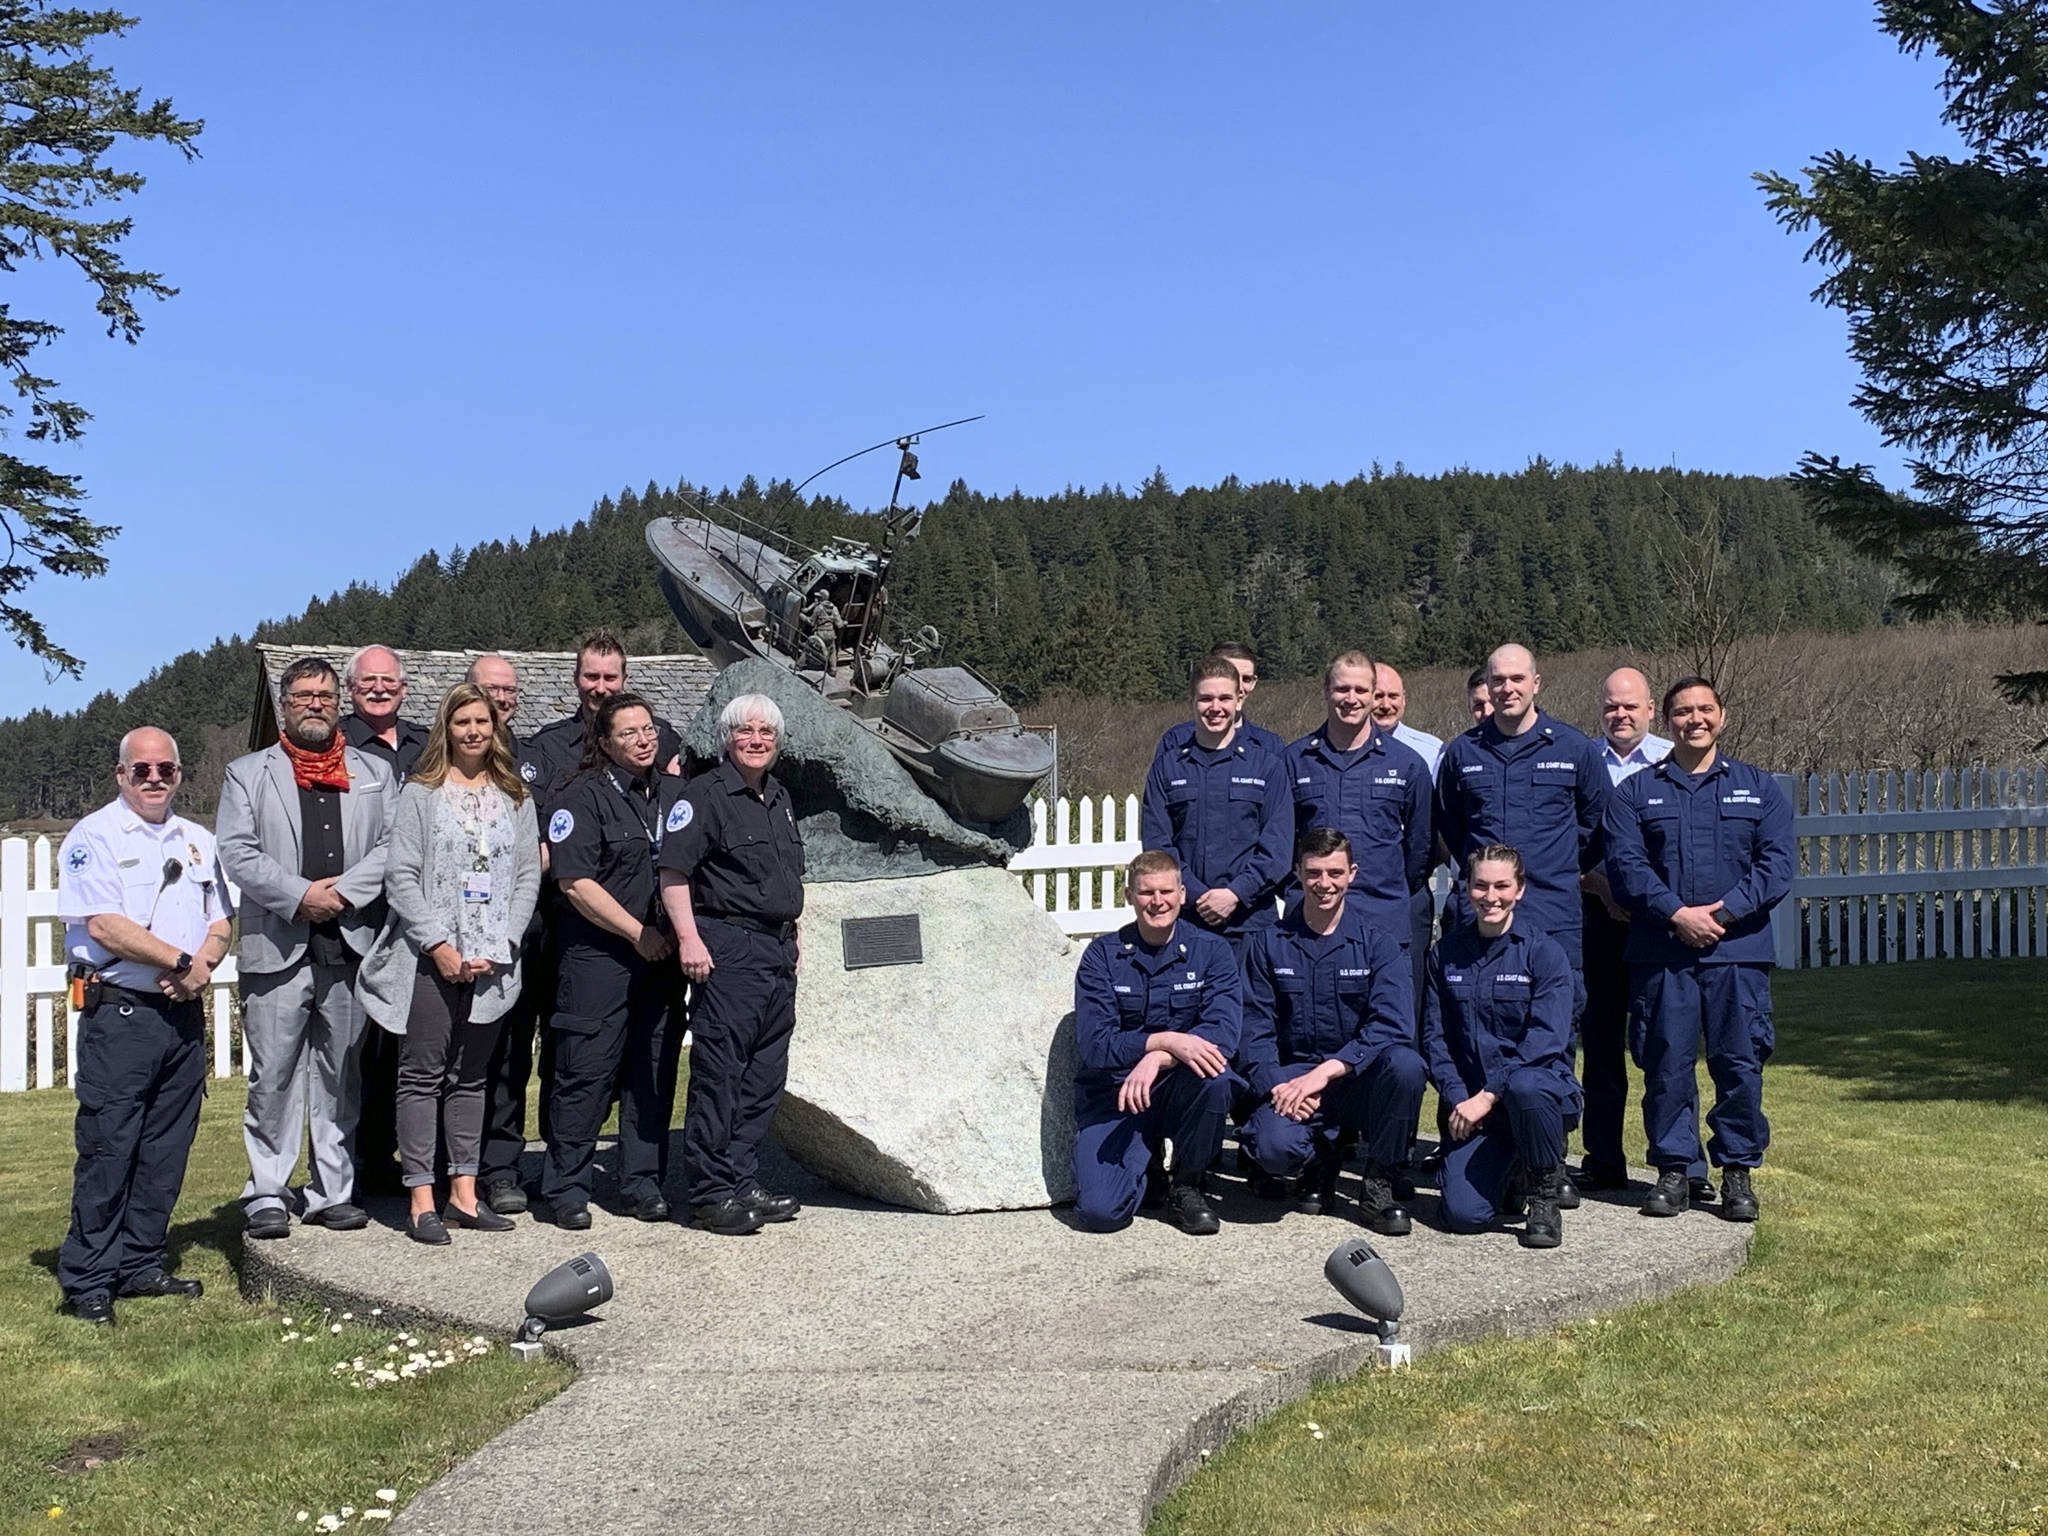 Forks Ambulance crew and USCG Station Quillayute River were recognized by Homeland security for recently saving lives.